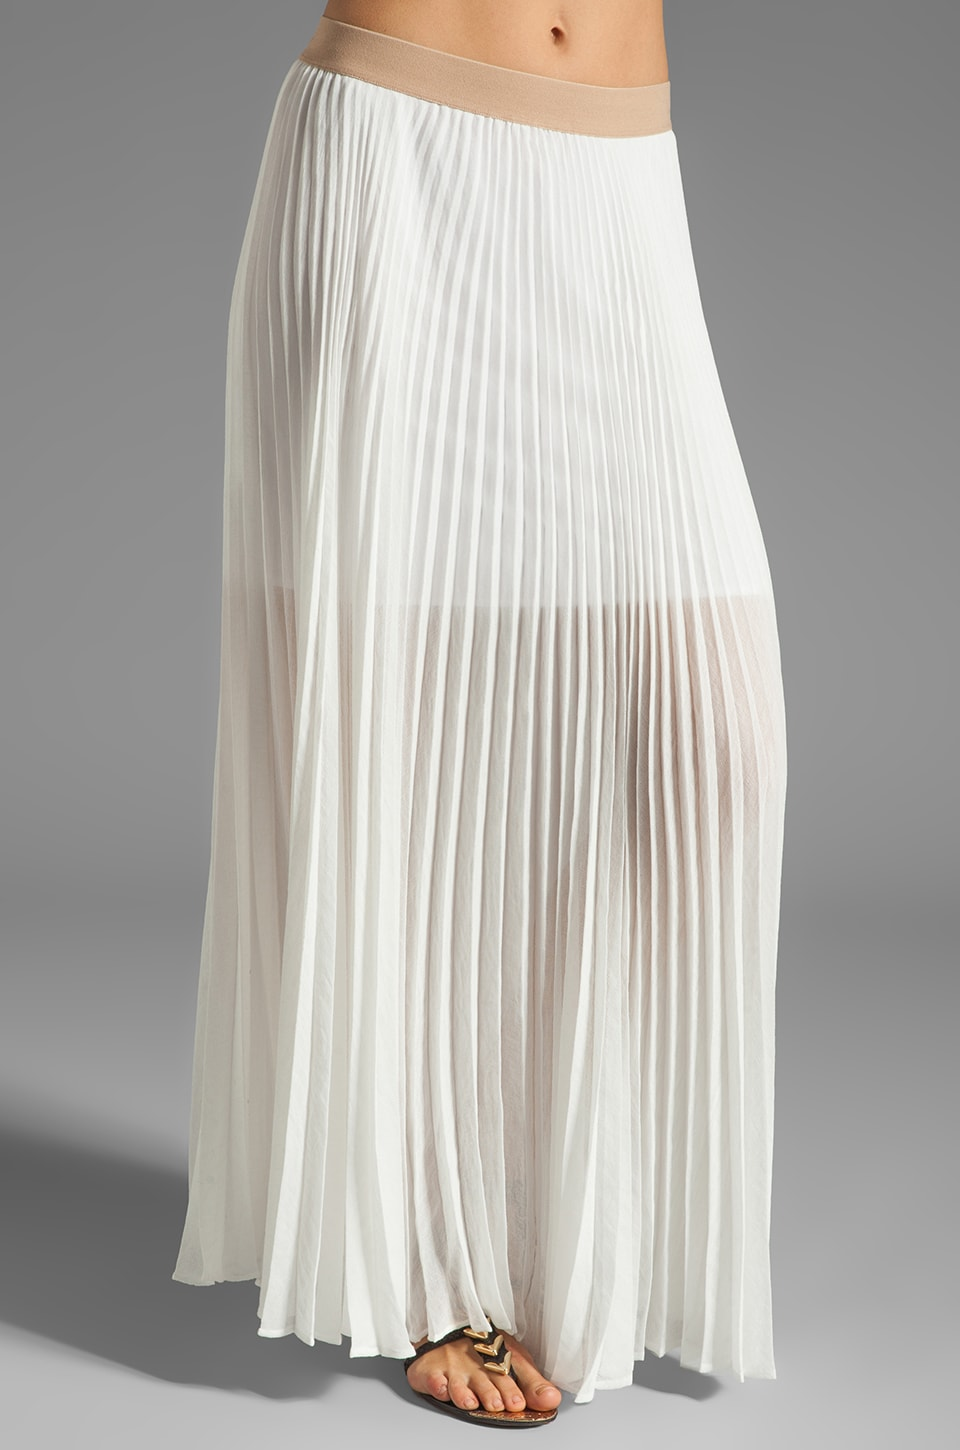 BCBGMAXAZRIA Pleated Maxi Skirt in White | REVOLVE